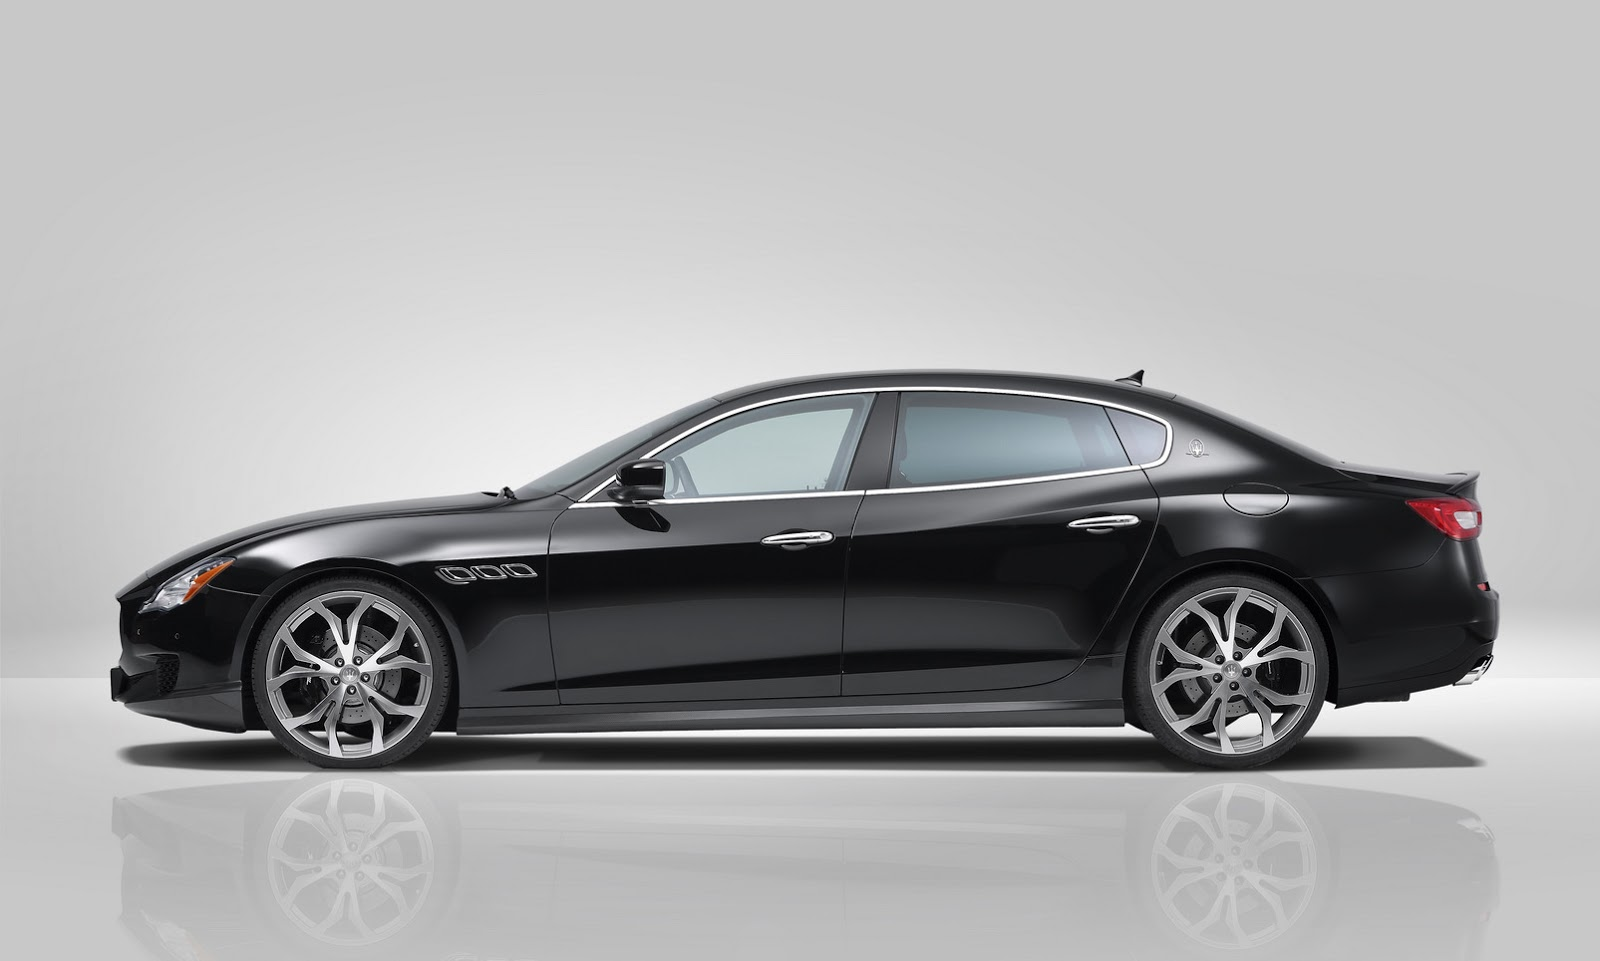 novitec powers up new maserati quattroporte carscoops. Black Bedroom Furniture Sets. Home Design Ideas